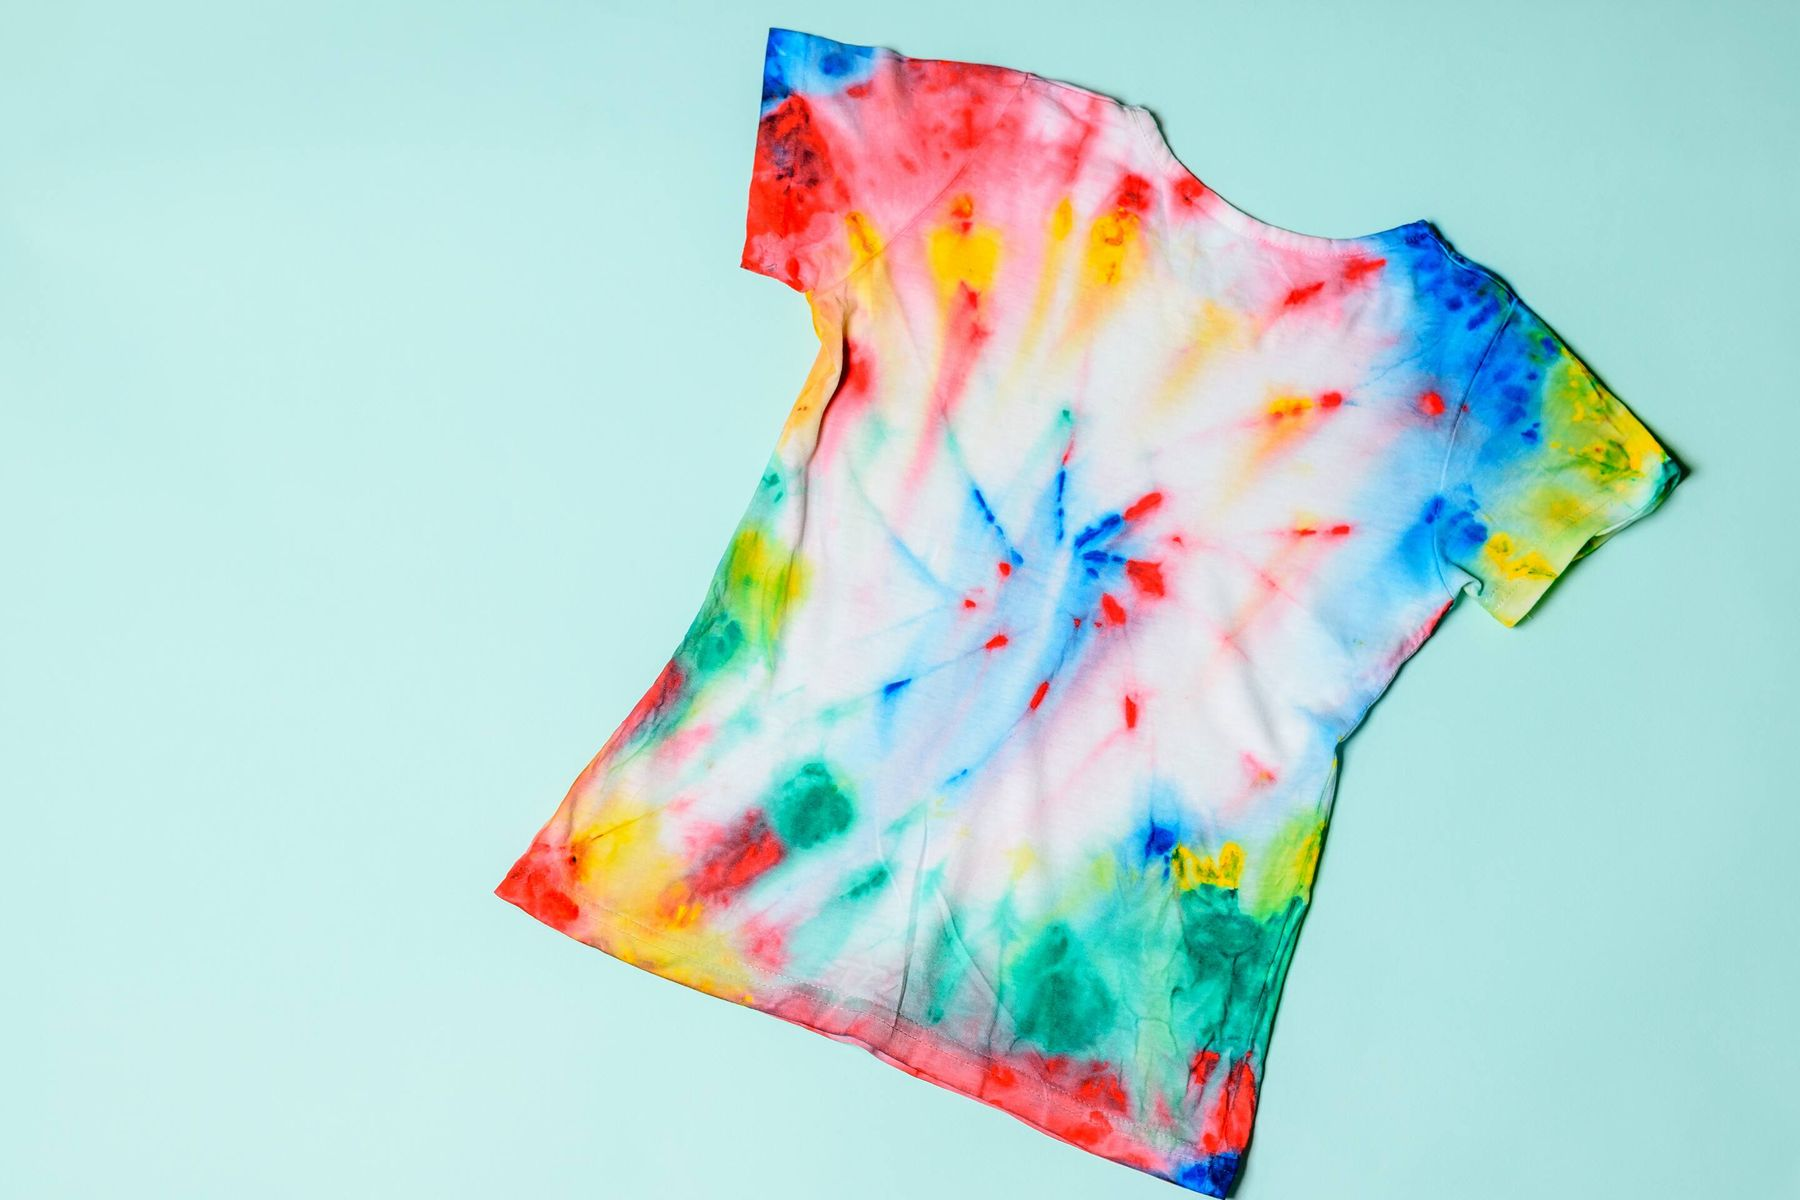 tie dye shirt on blue background